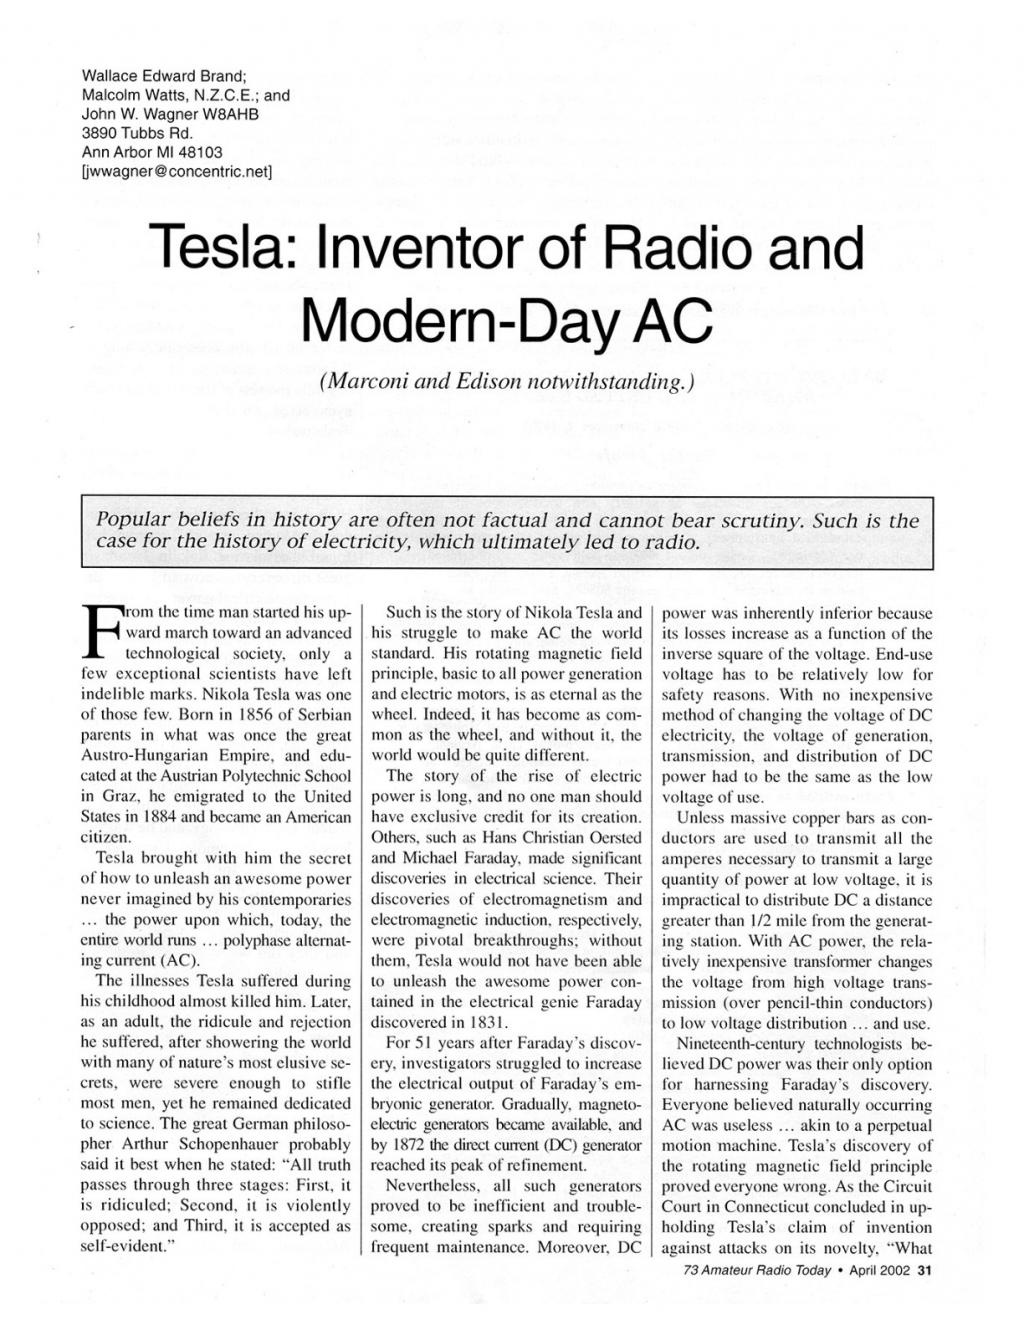 Preview of Tesla: Inventor of Radio and Modern-Day AC  article